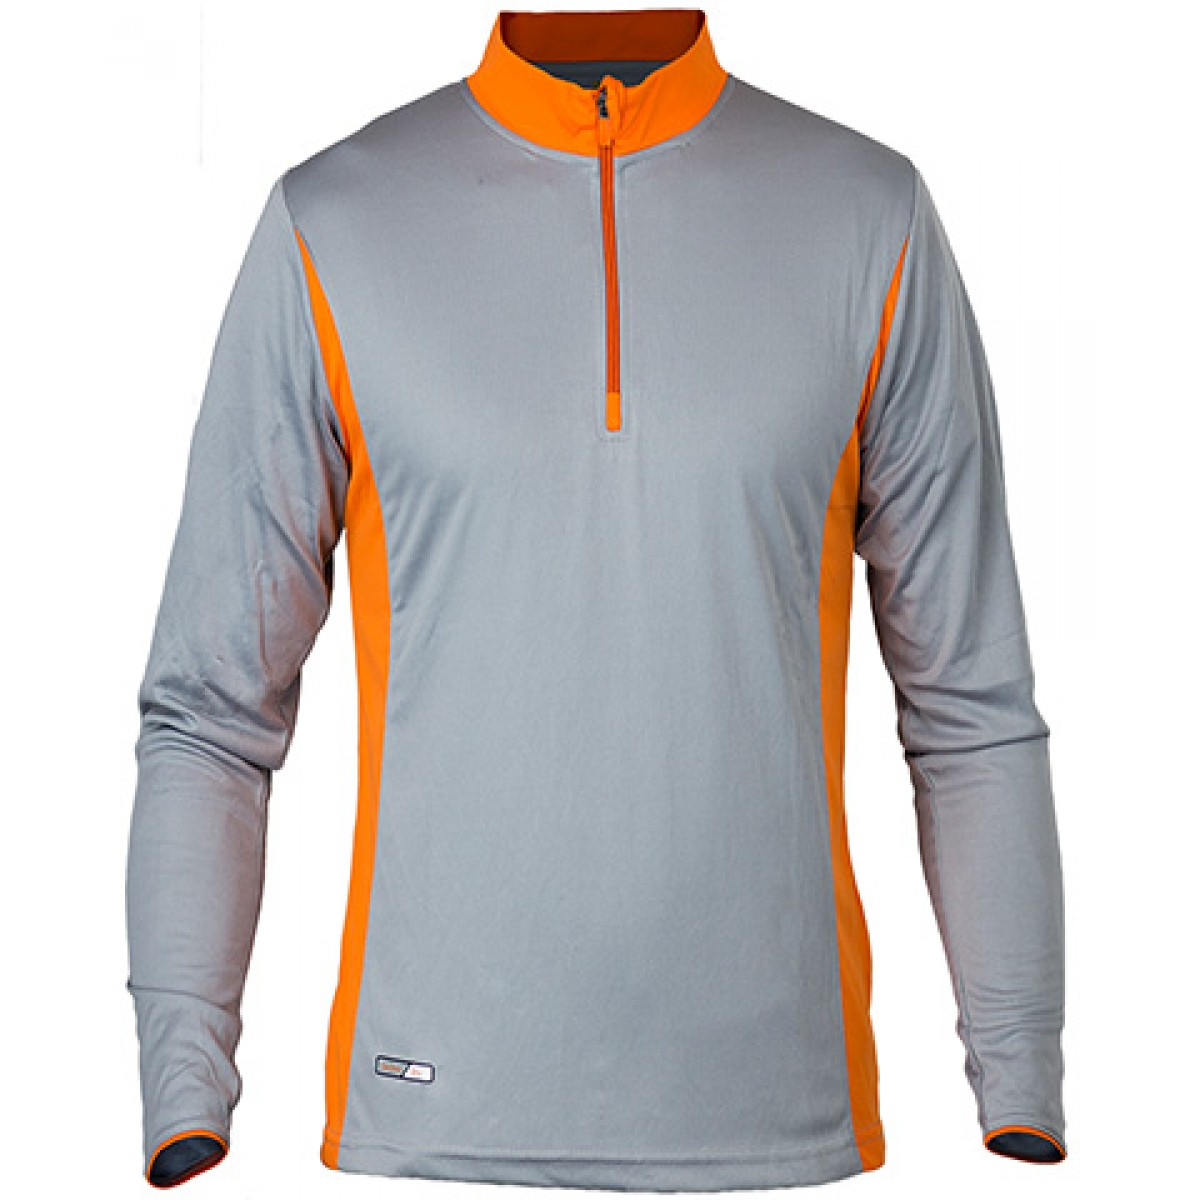 Long Sleeves 3/4 Zip Performance With Side Insert-Neon Orange -2XL